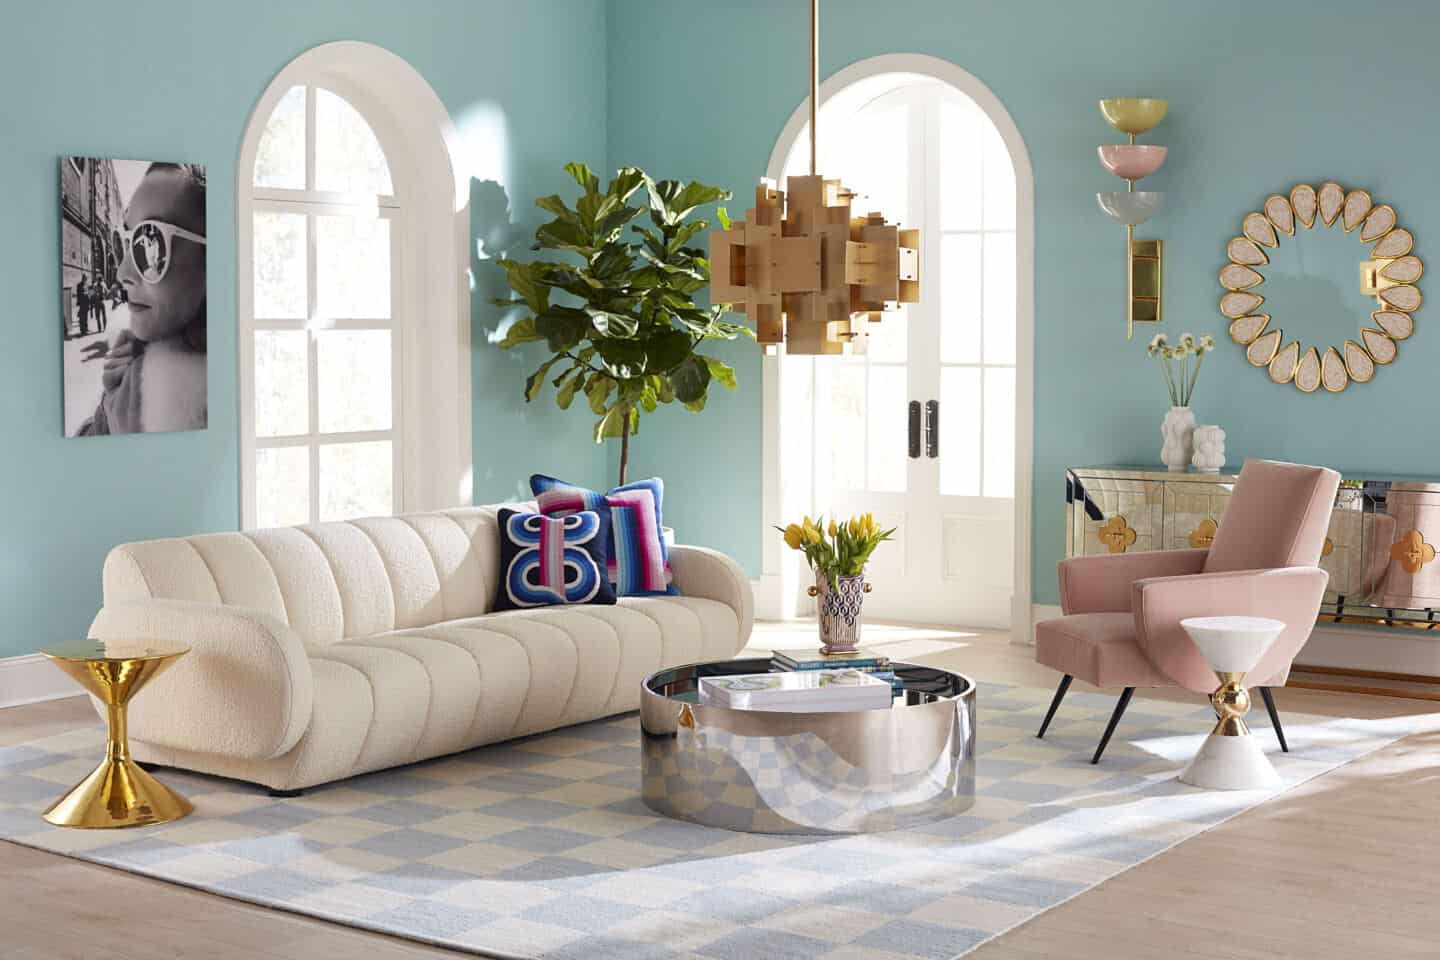 Jonathan Adler's Brigitte sofa in bouclé texiles in a living room setting. The livingroom is in pastel hues and the sofa is on a chequered rug